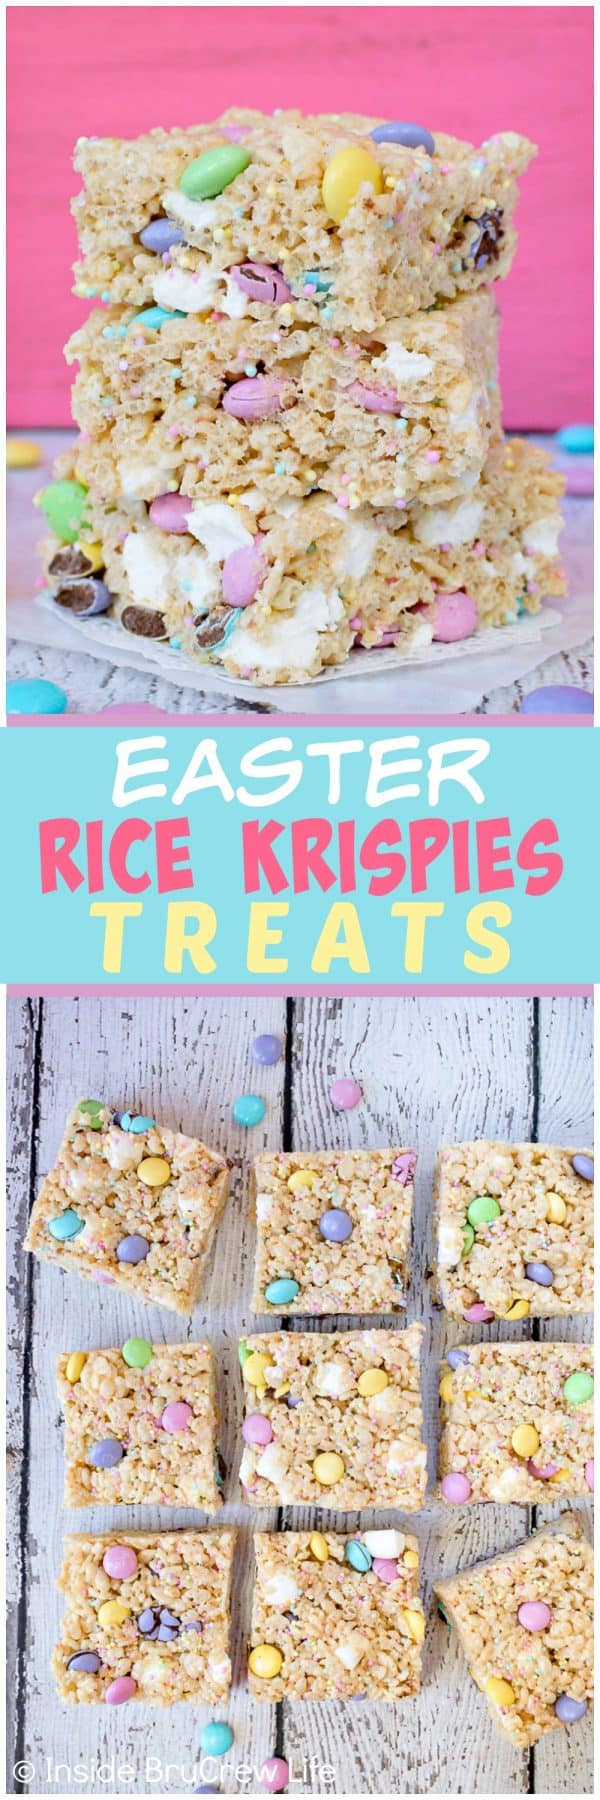 Easter Rice Krispies Treats - adding pastel sprinkles and candies make these fun treats so irresistible and pretty. Great recipe to share at Easter parties and dinners. #nobake #ricekrispies #sprinkles #dessert #Easter #ricekrispiestreats #candy